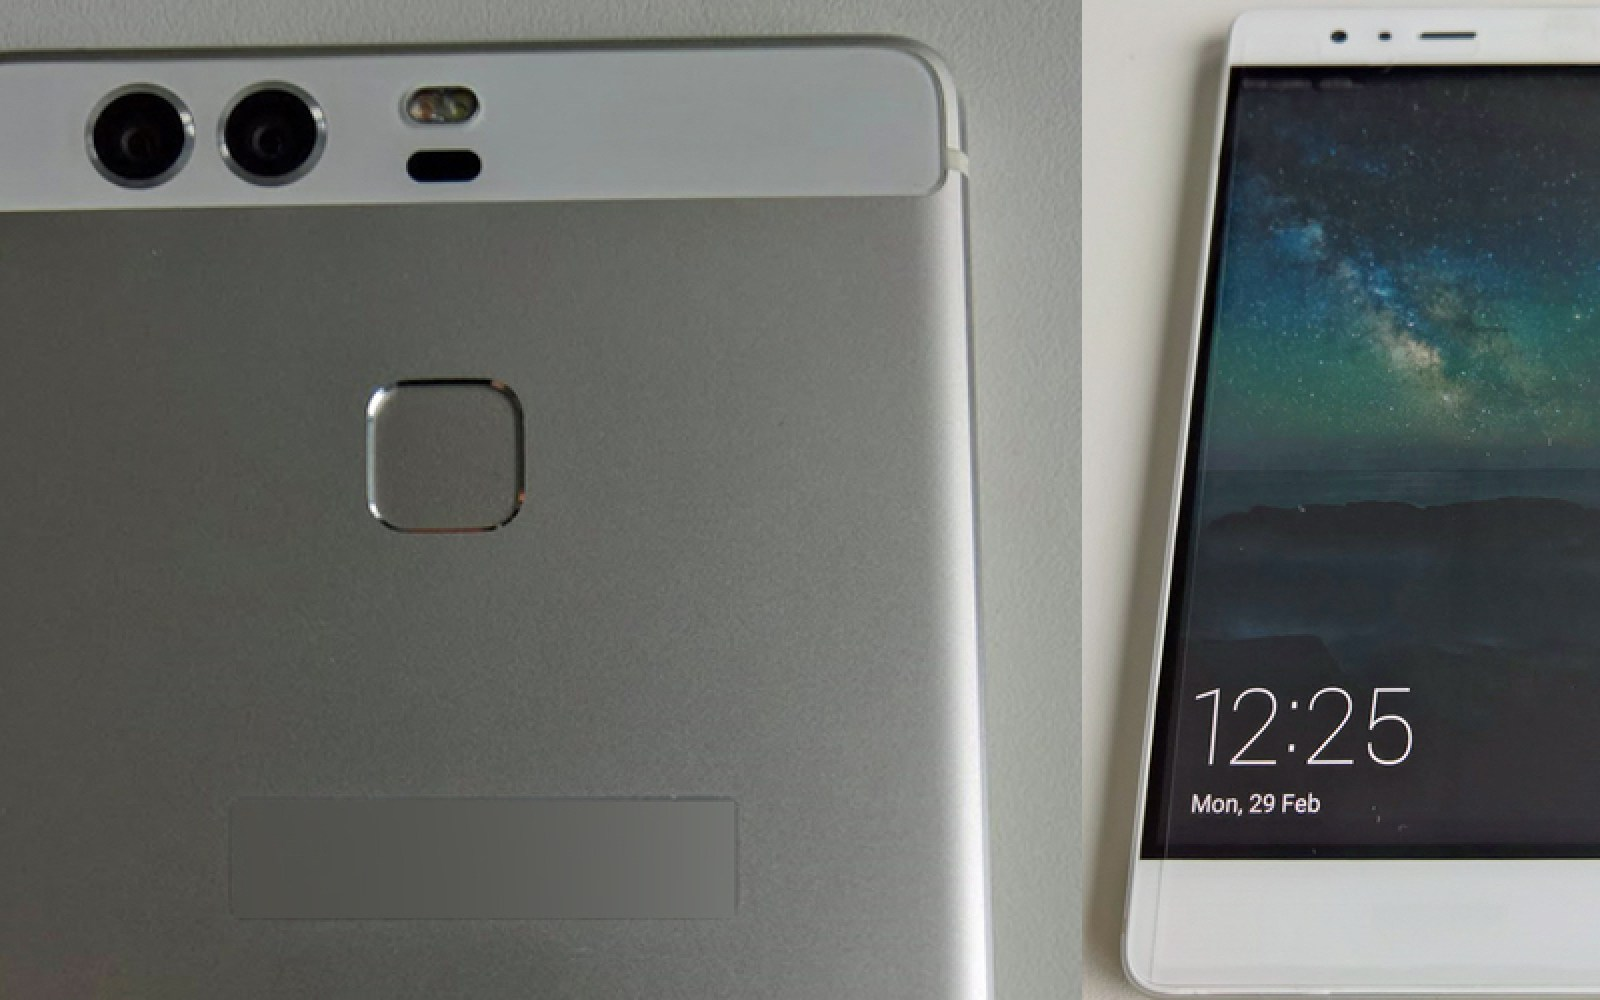 Huawei P9 release date seemingly scheduled for April 9